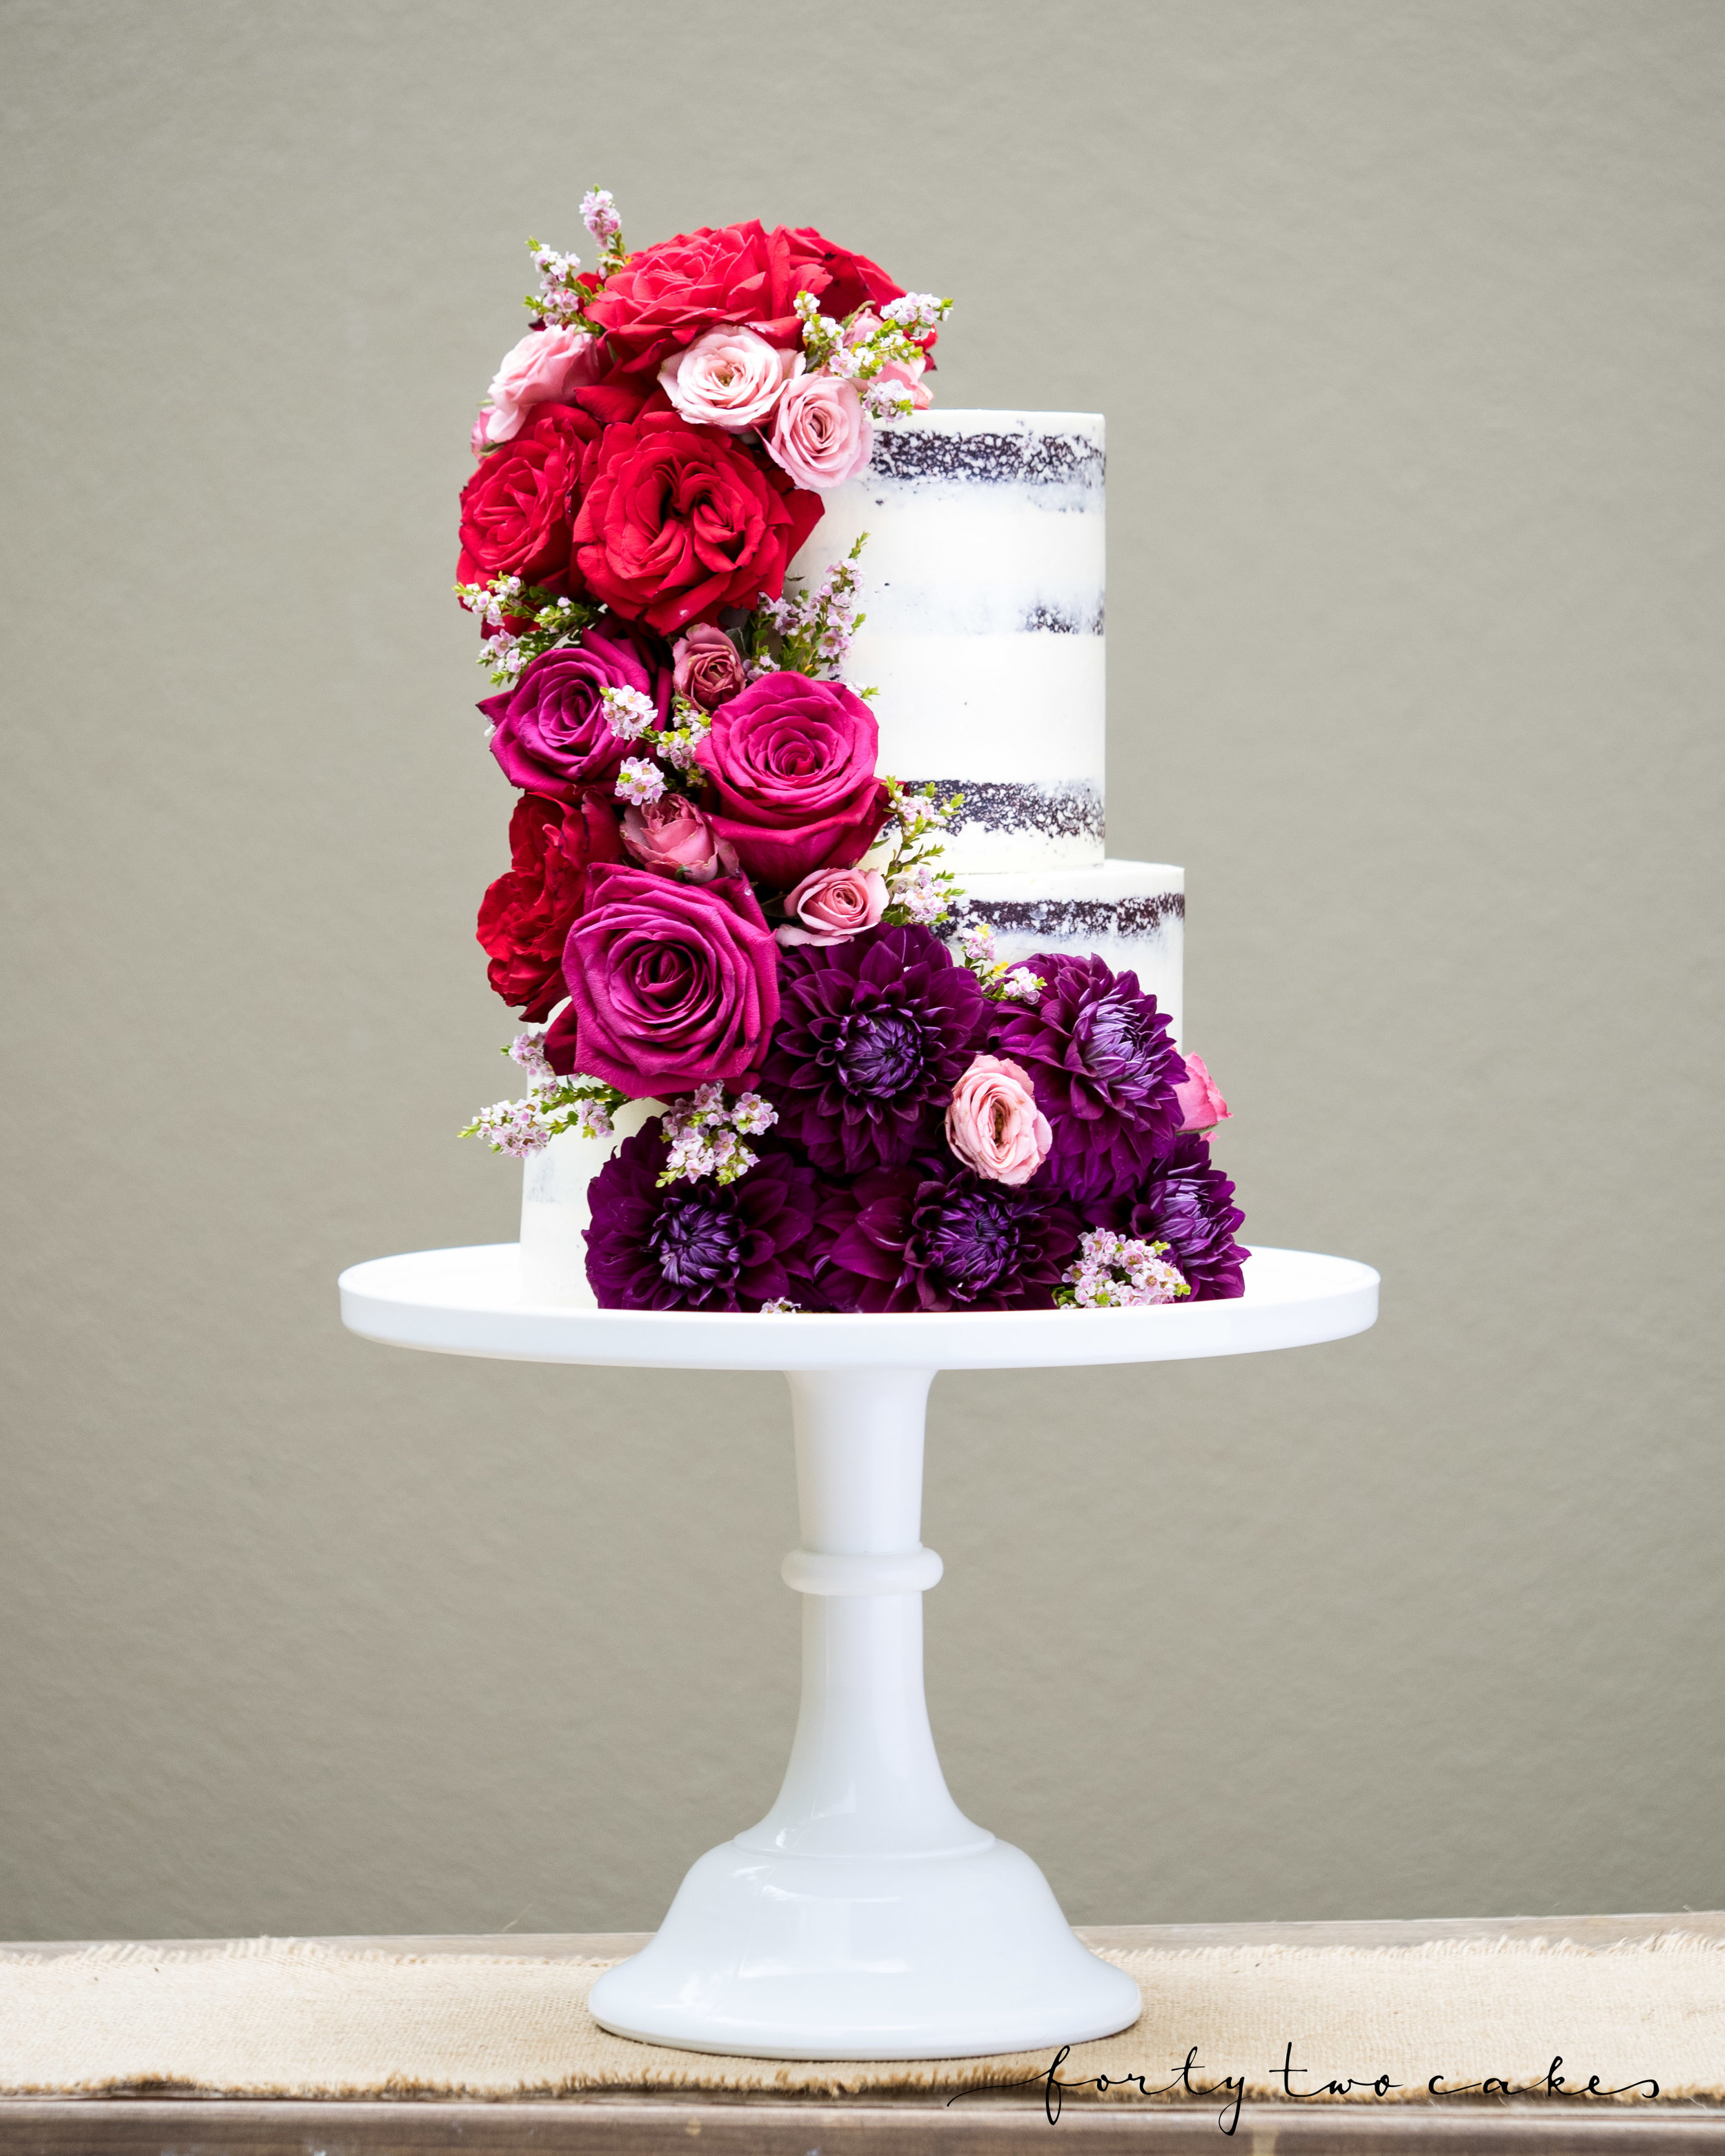 Forty-Two Cakes - Seminaked-20.jpg